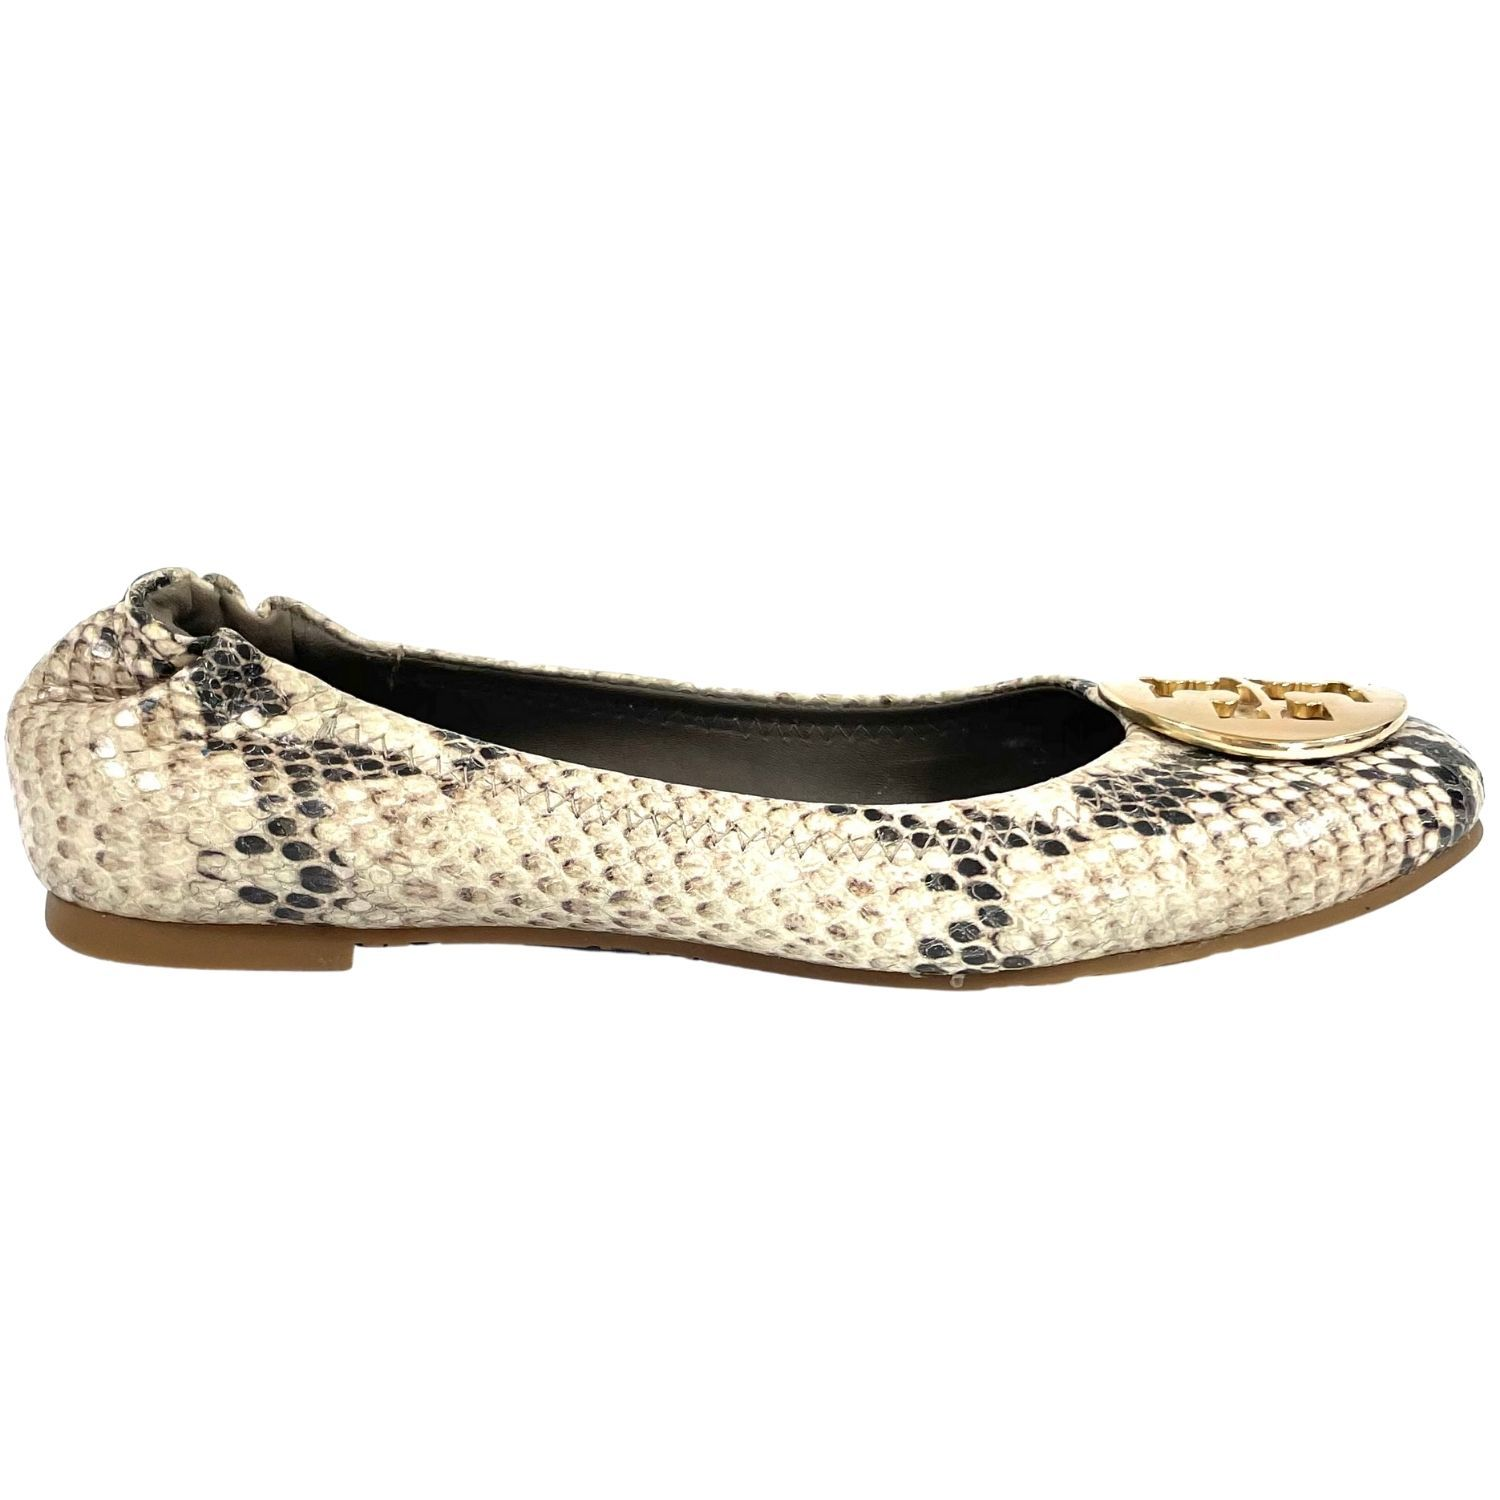 Sapatilha Tory Burch Embossed Snake